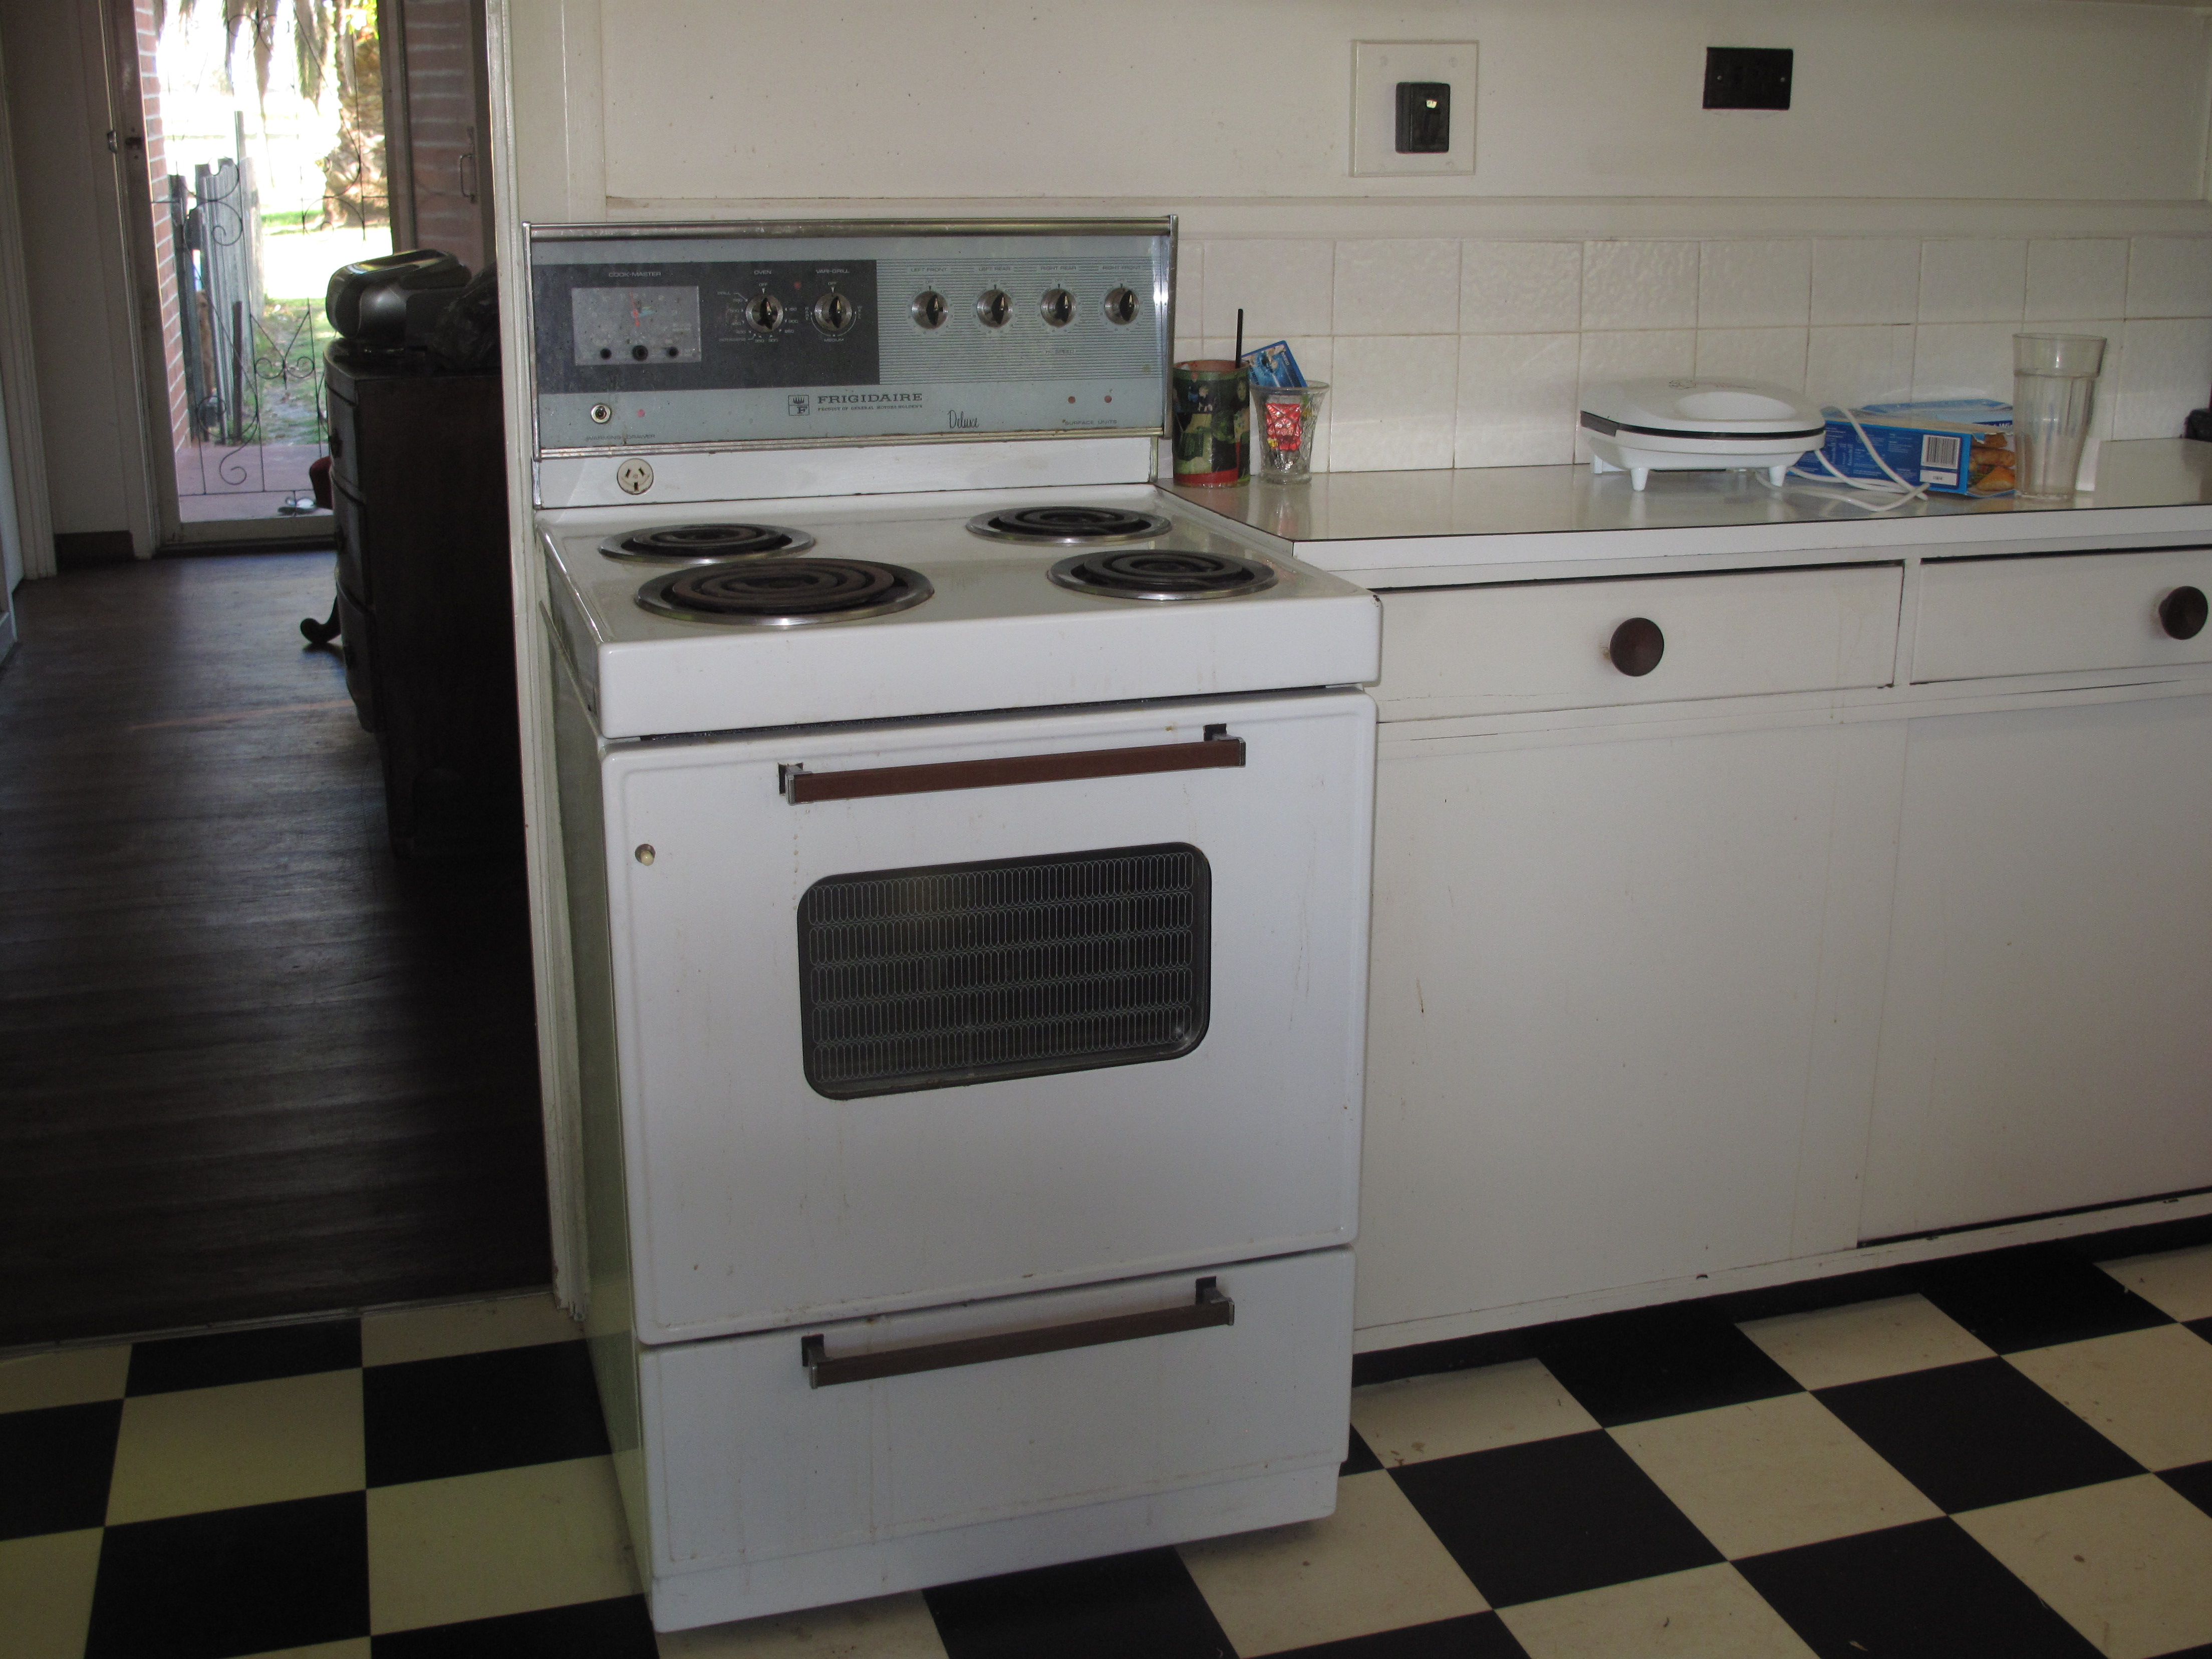 The stove that died | jmgoyder